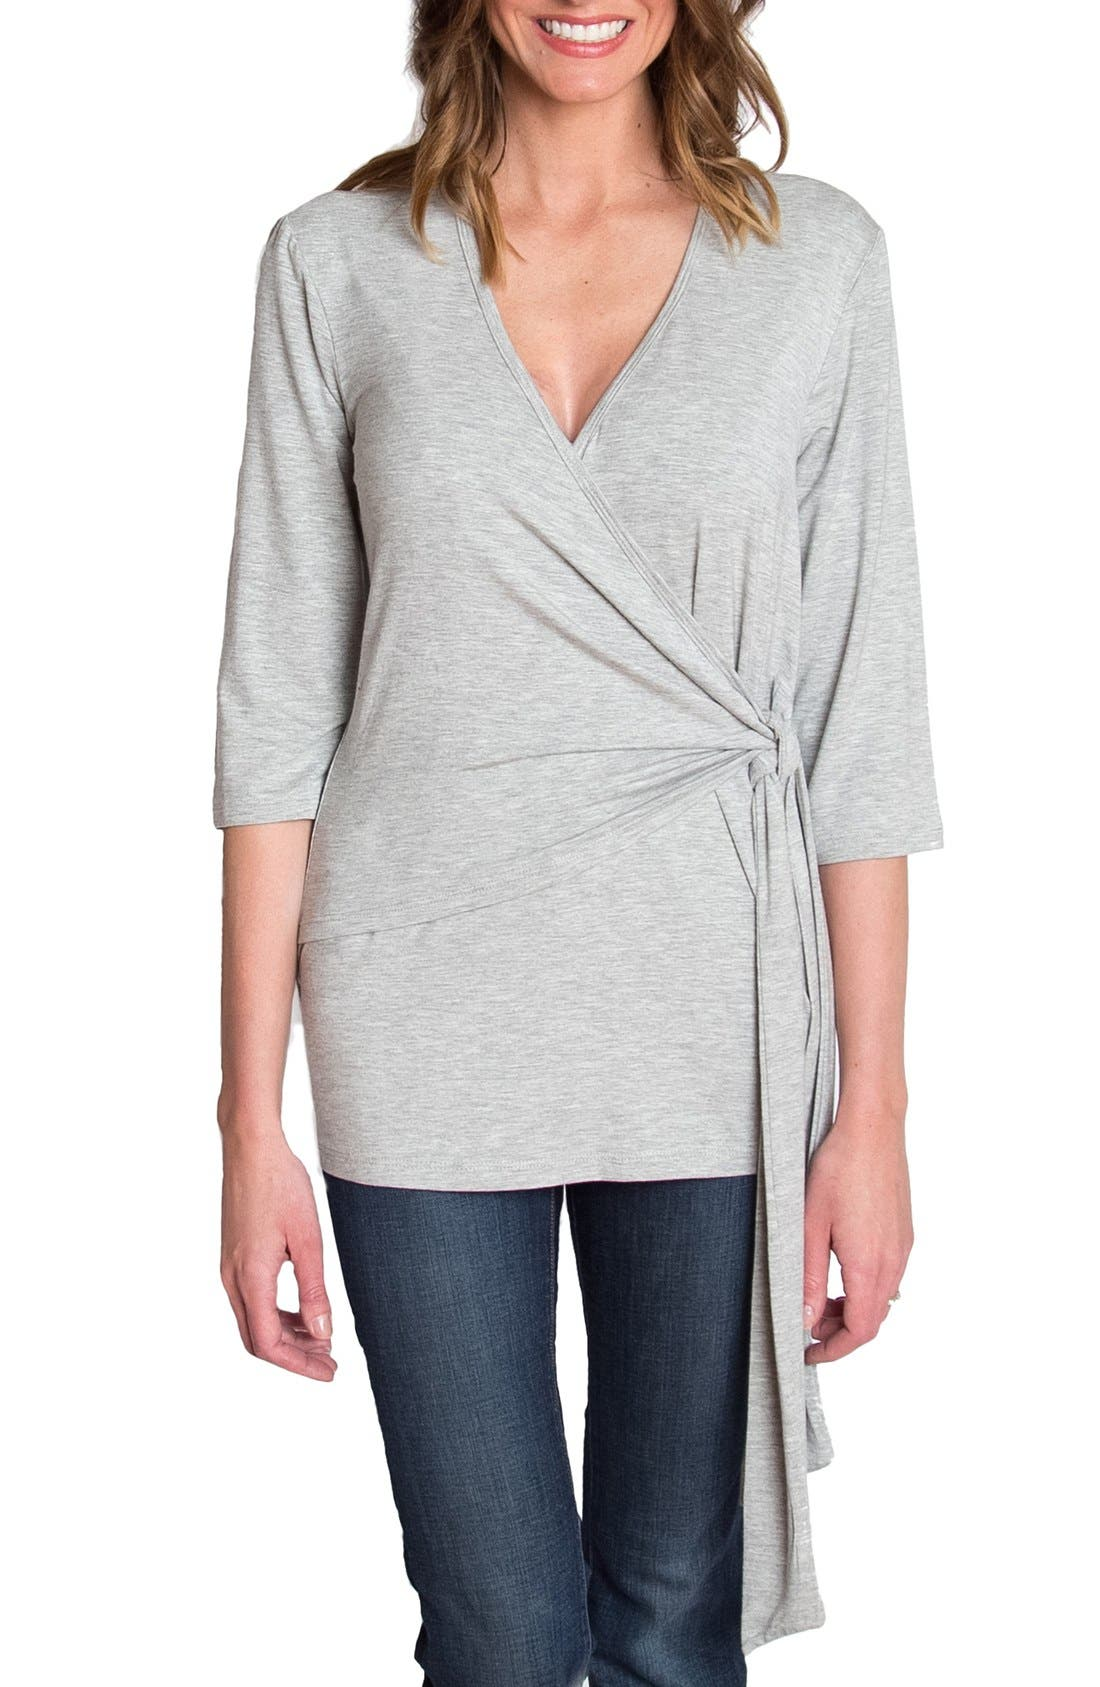 Whimsical Nursing Wrap Top,                             Main thumbnail 1, color,                             HEATHER GRAY